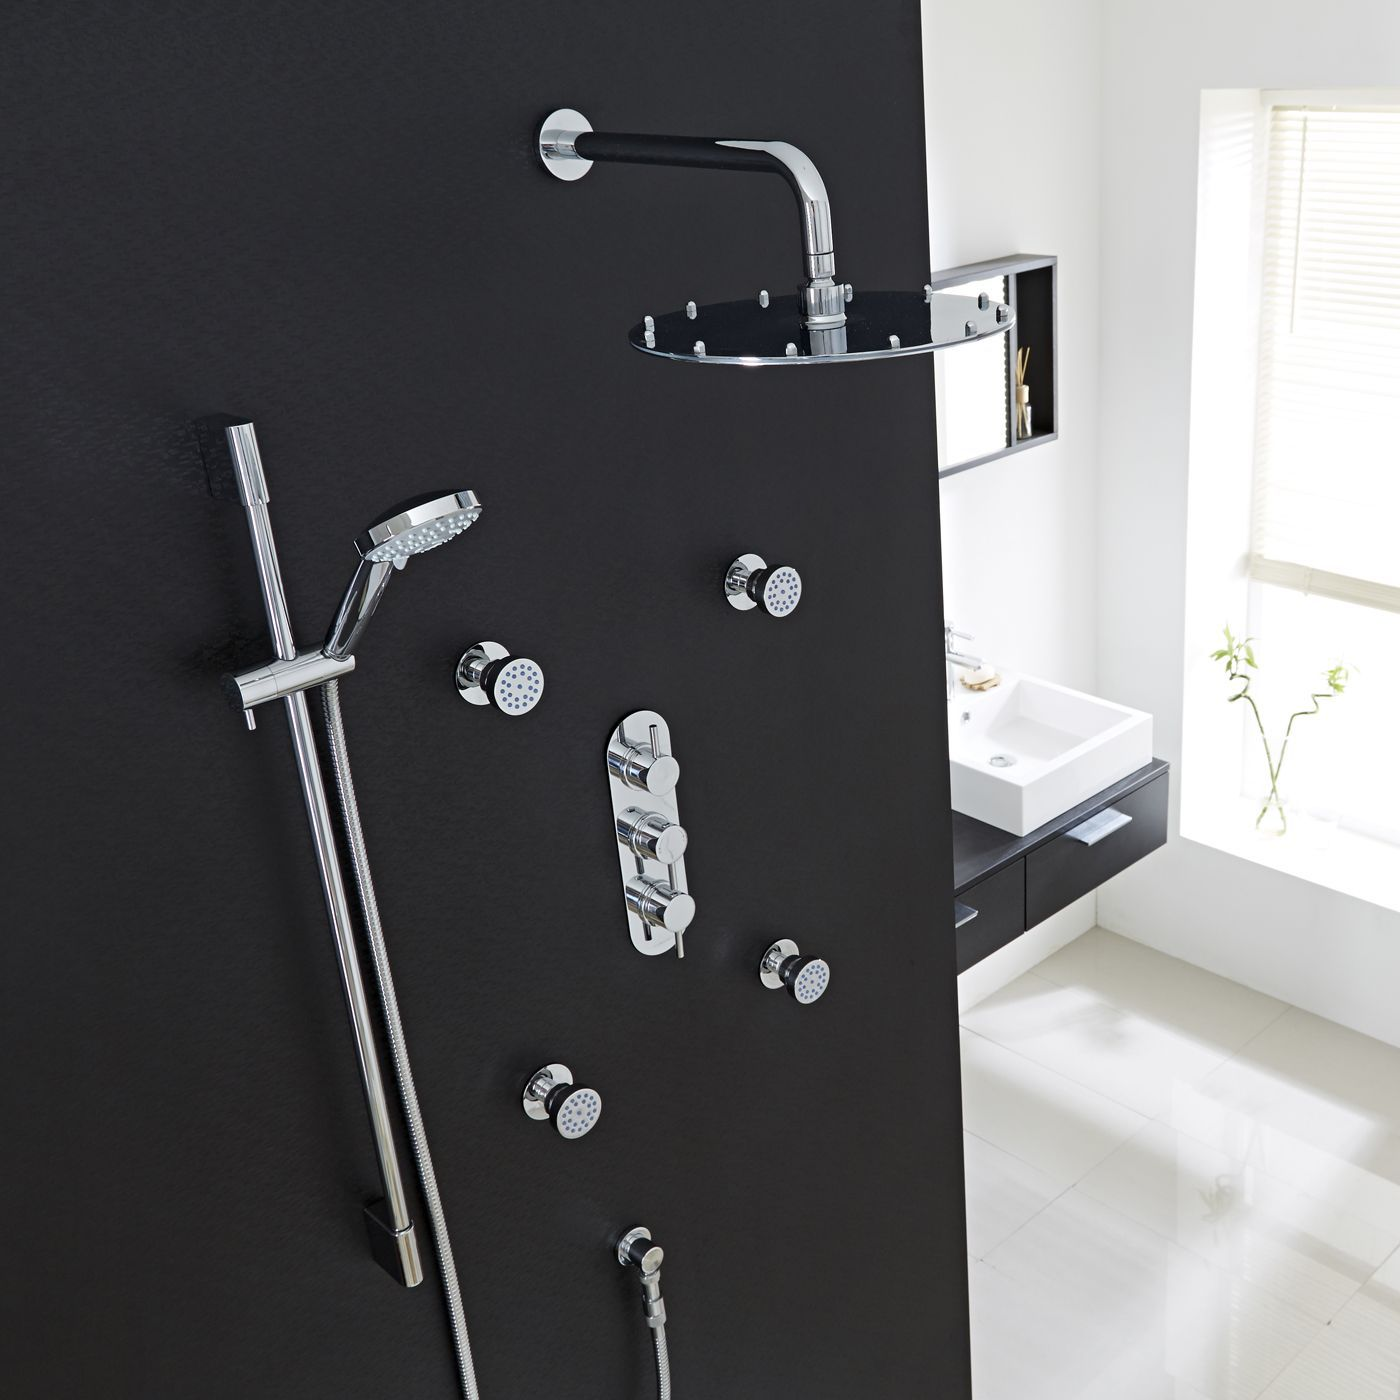 Quest Thermostatic Shower System With 12 Round Head Arm Multi Function Handset 4 Jet Sprays